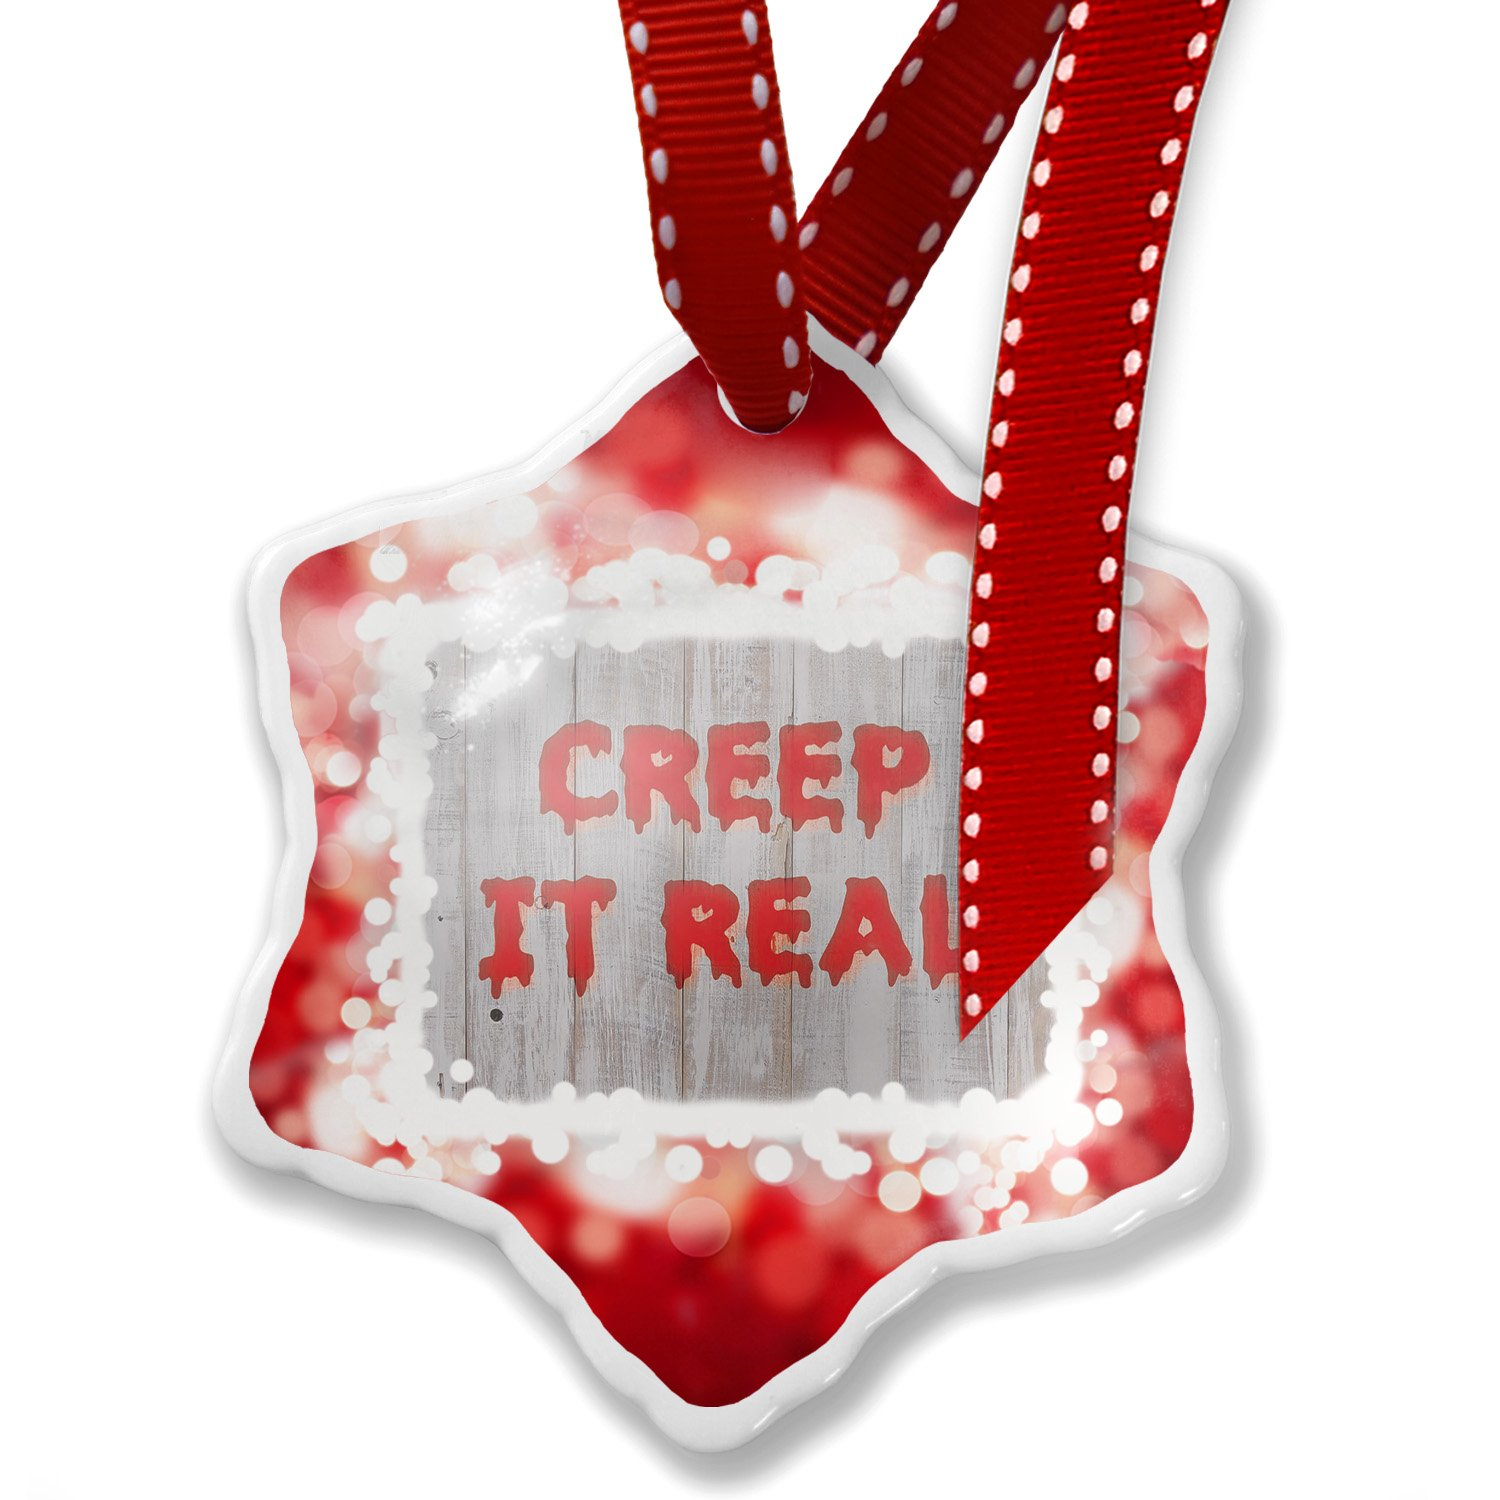 Christmas Ornament Creep It Real Halloween Bloody Wall, red - Neonblond